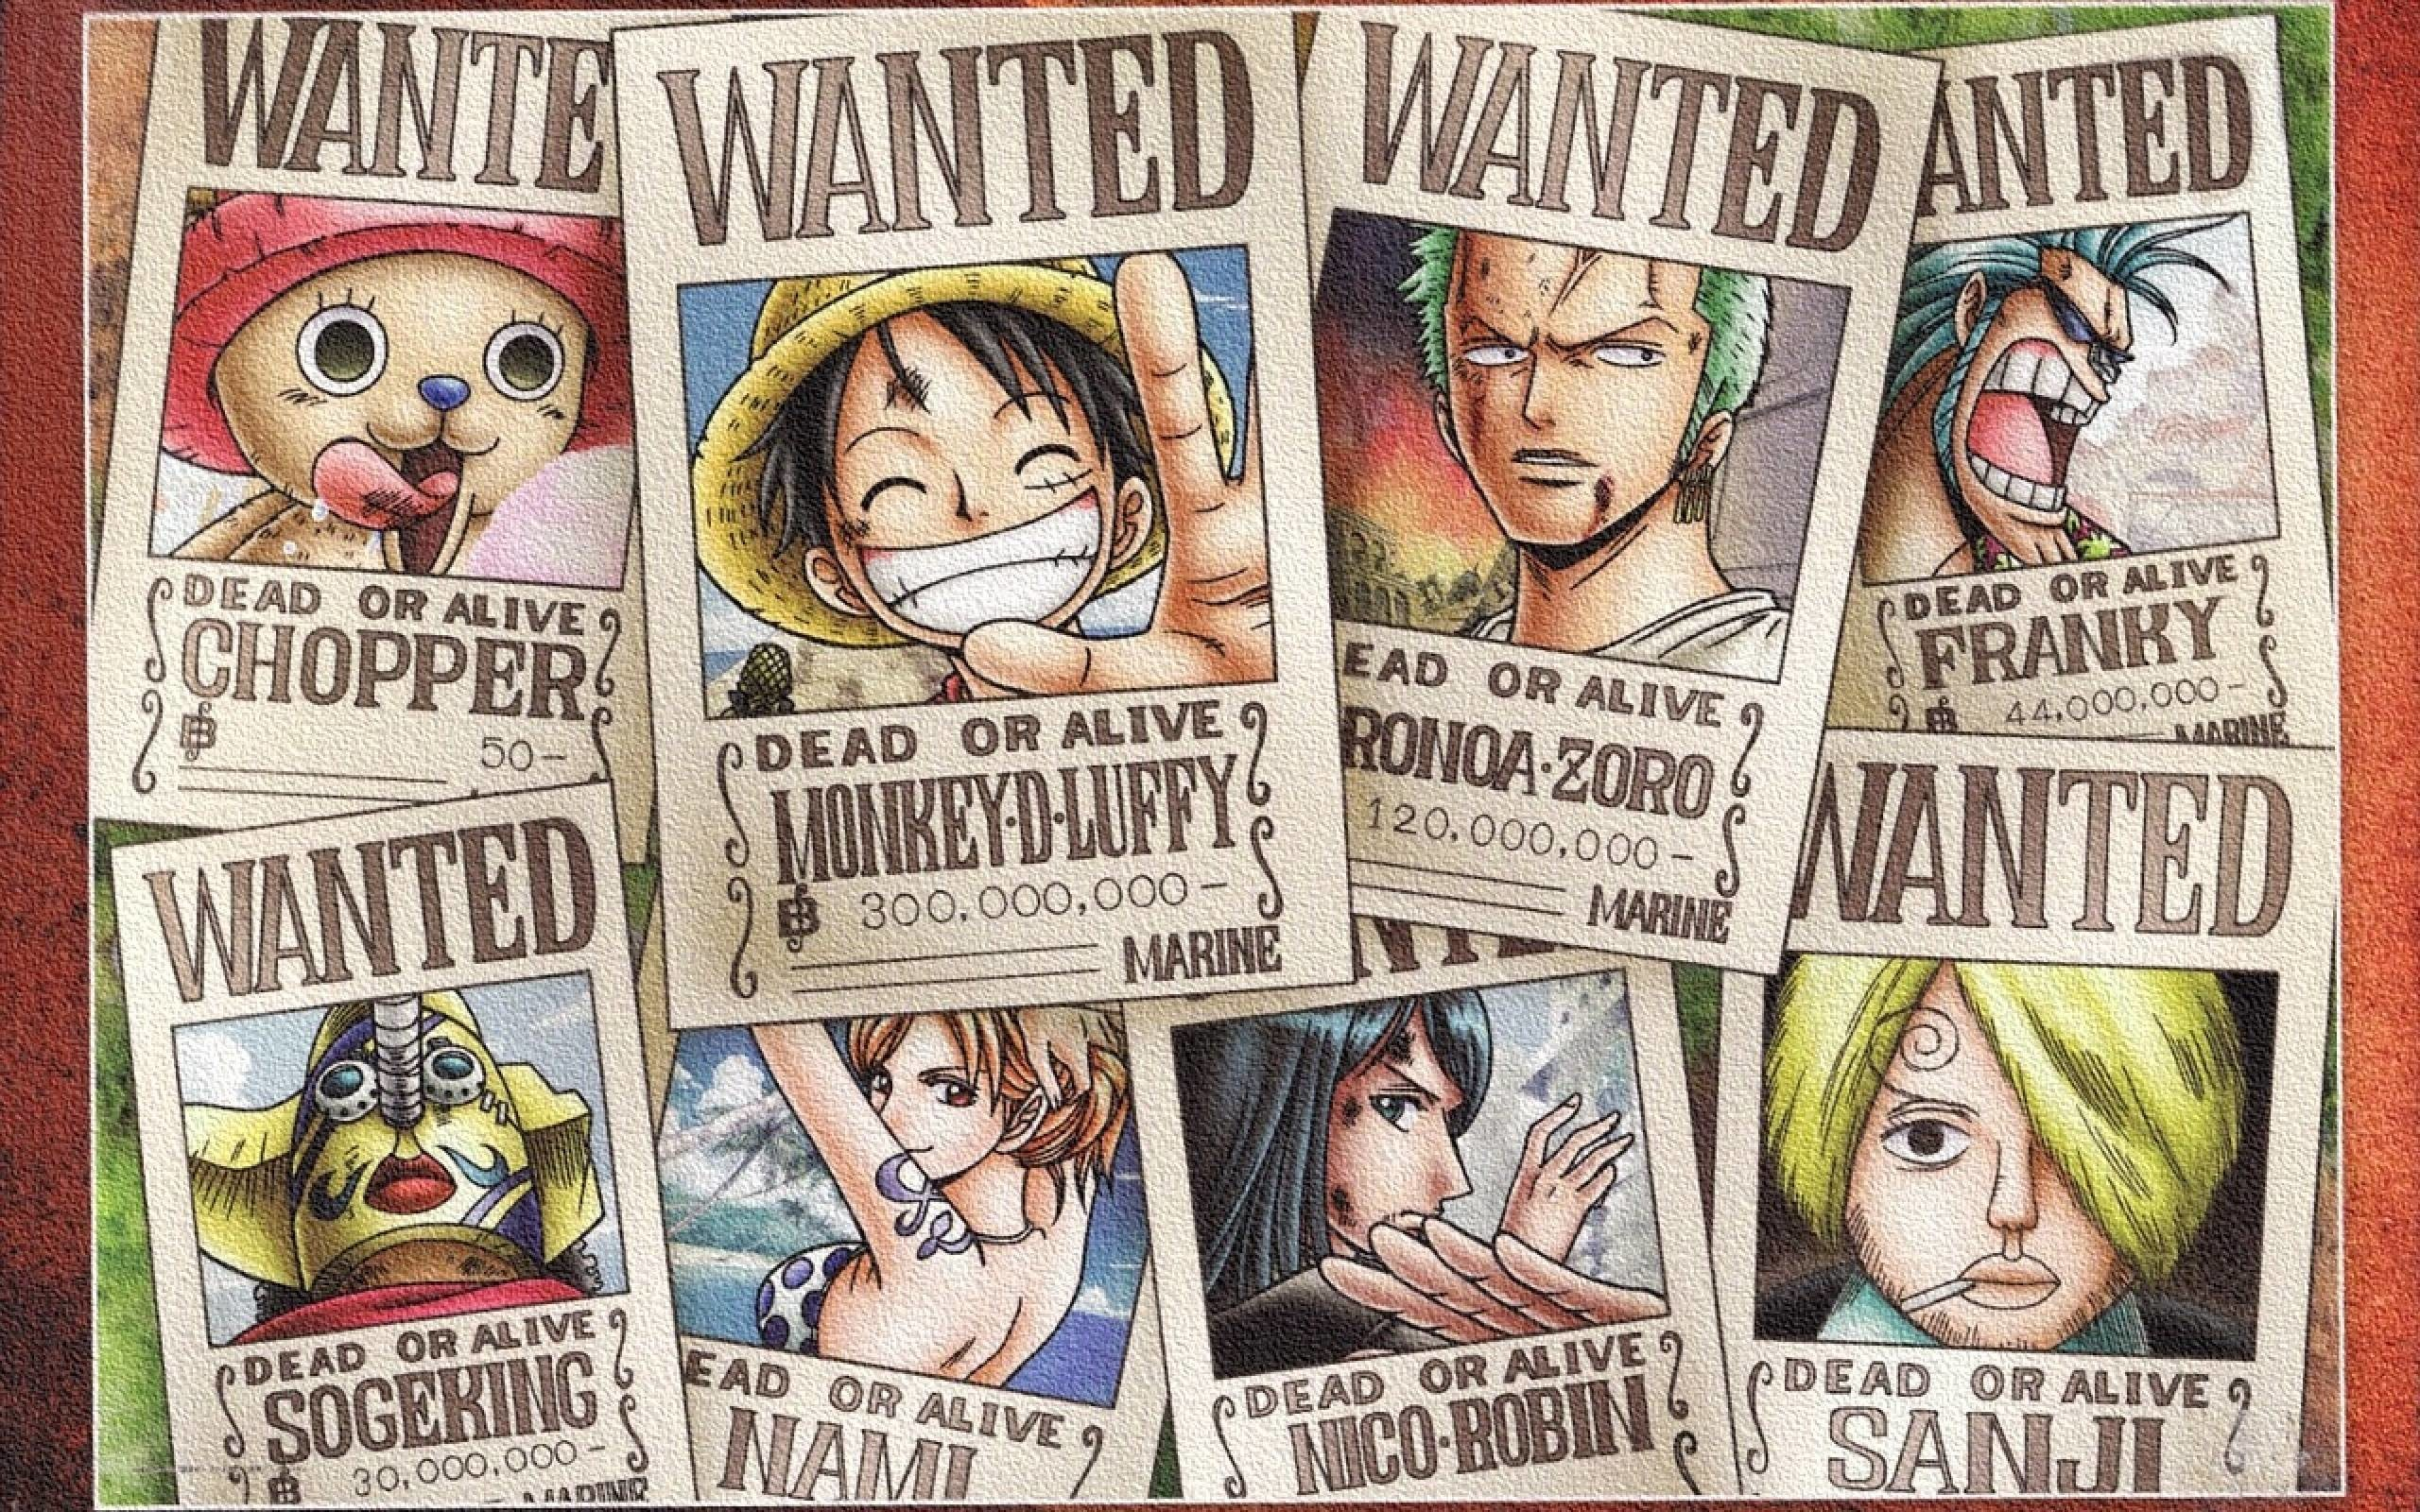 One Piece Wallpaper Wanted Wallpapertag